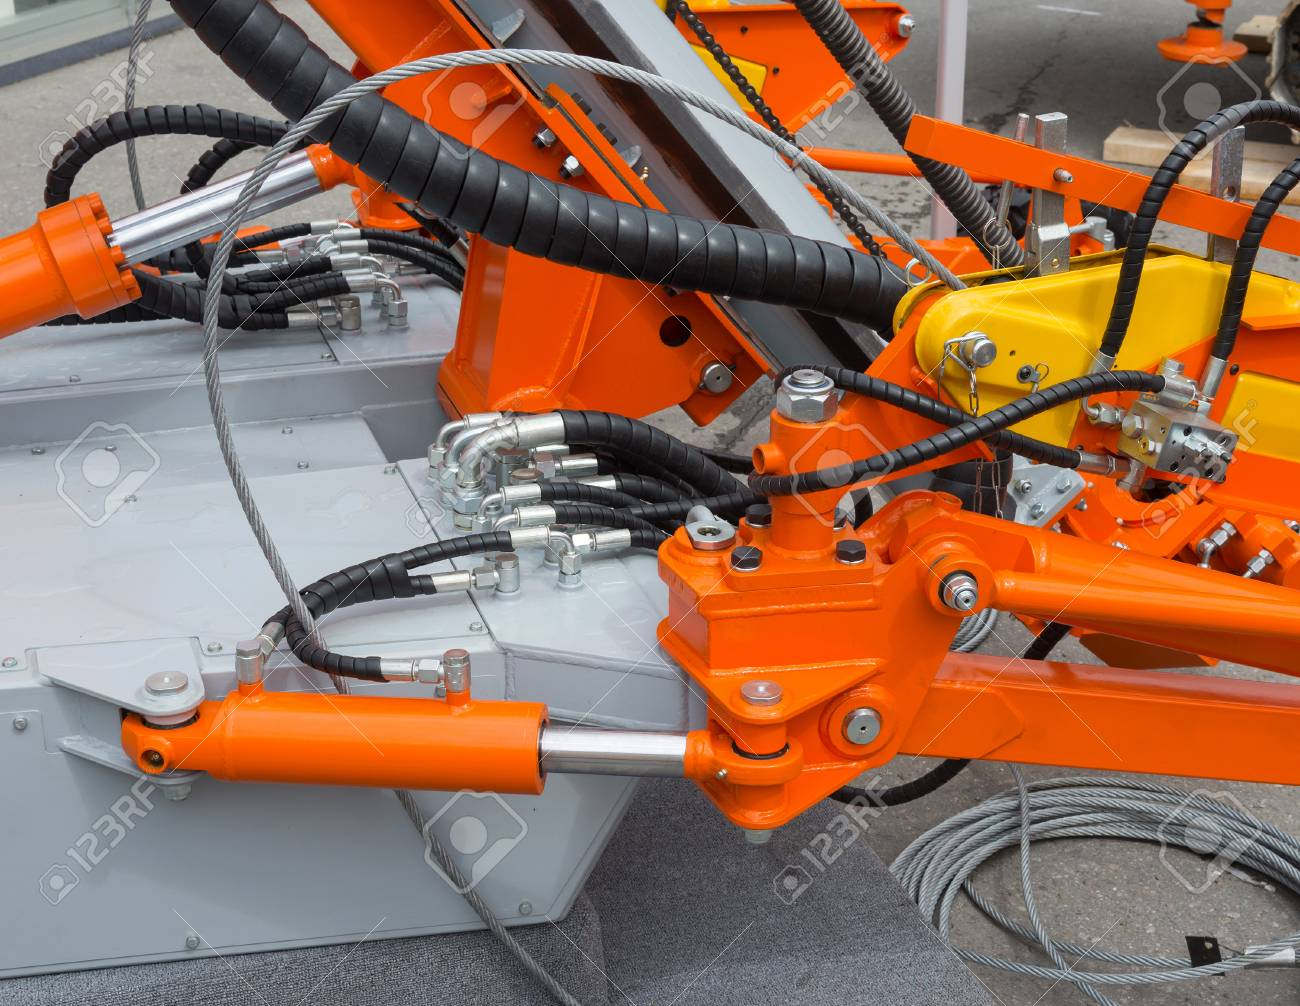 Hydraulic tubes, fittings and levers on control panel of lifting mechanism - 106433029